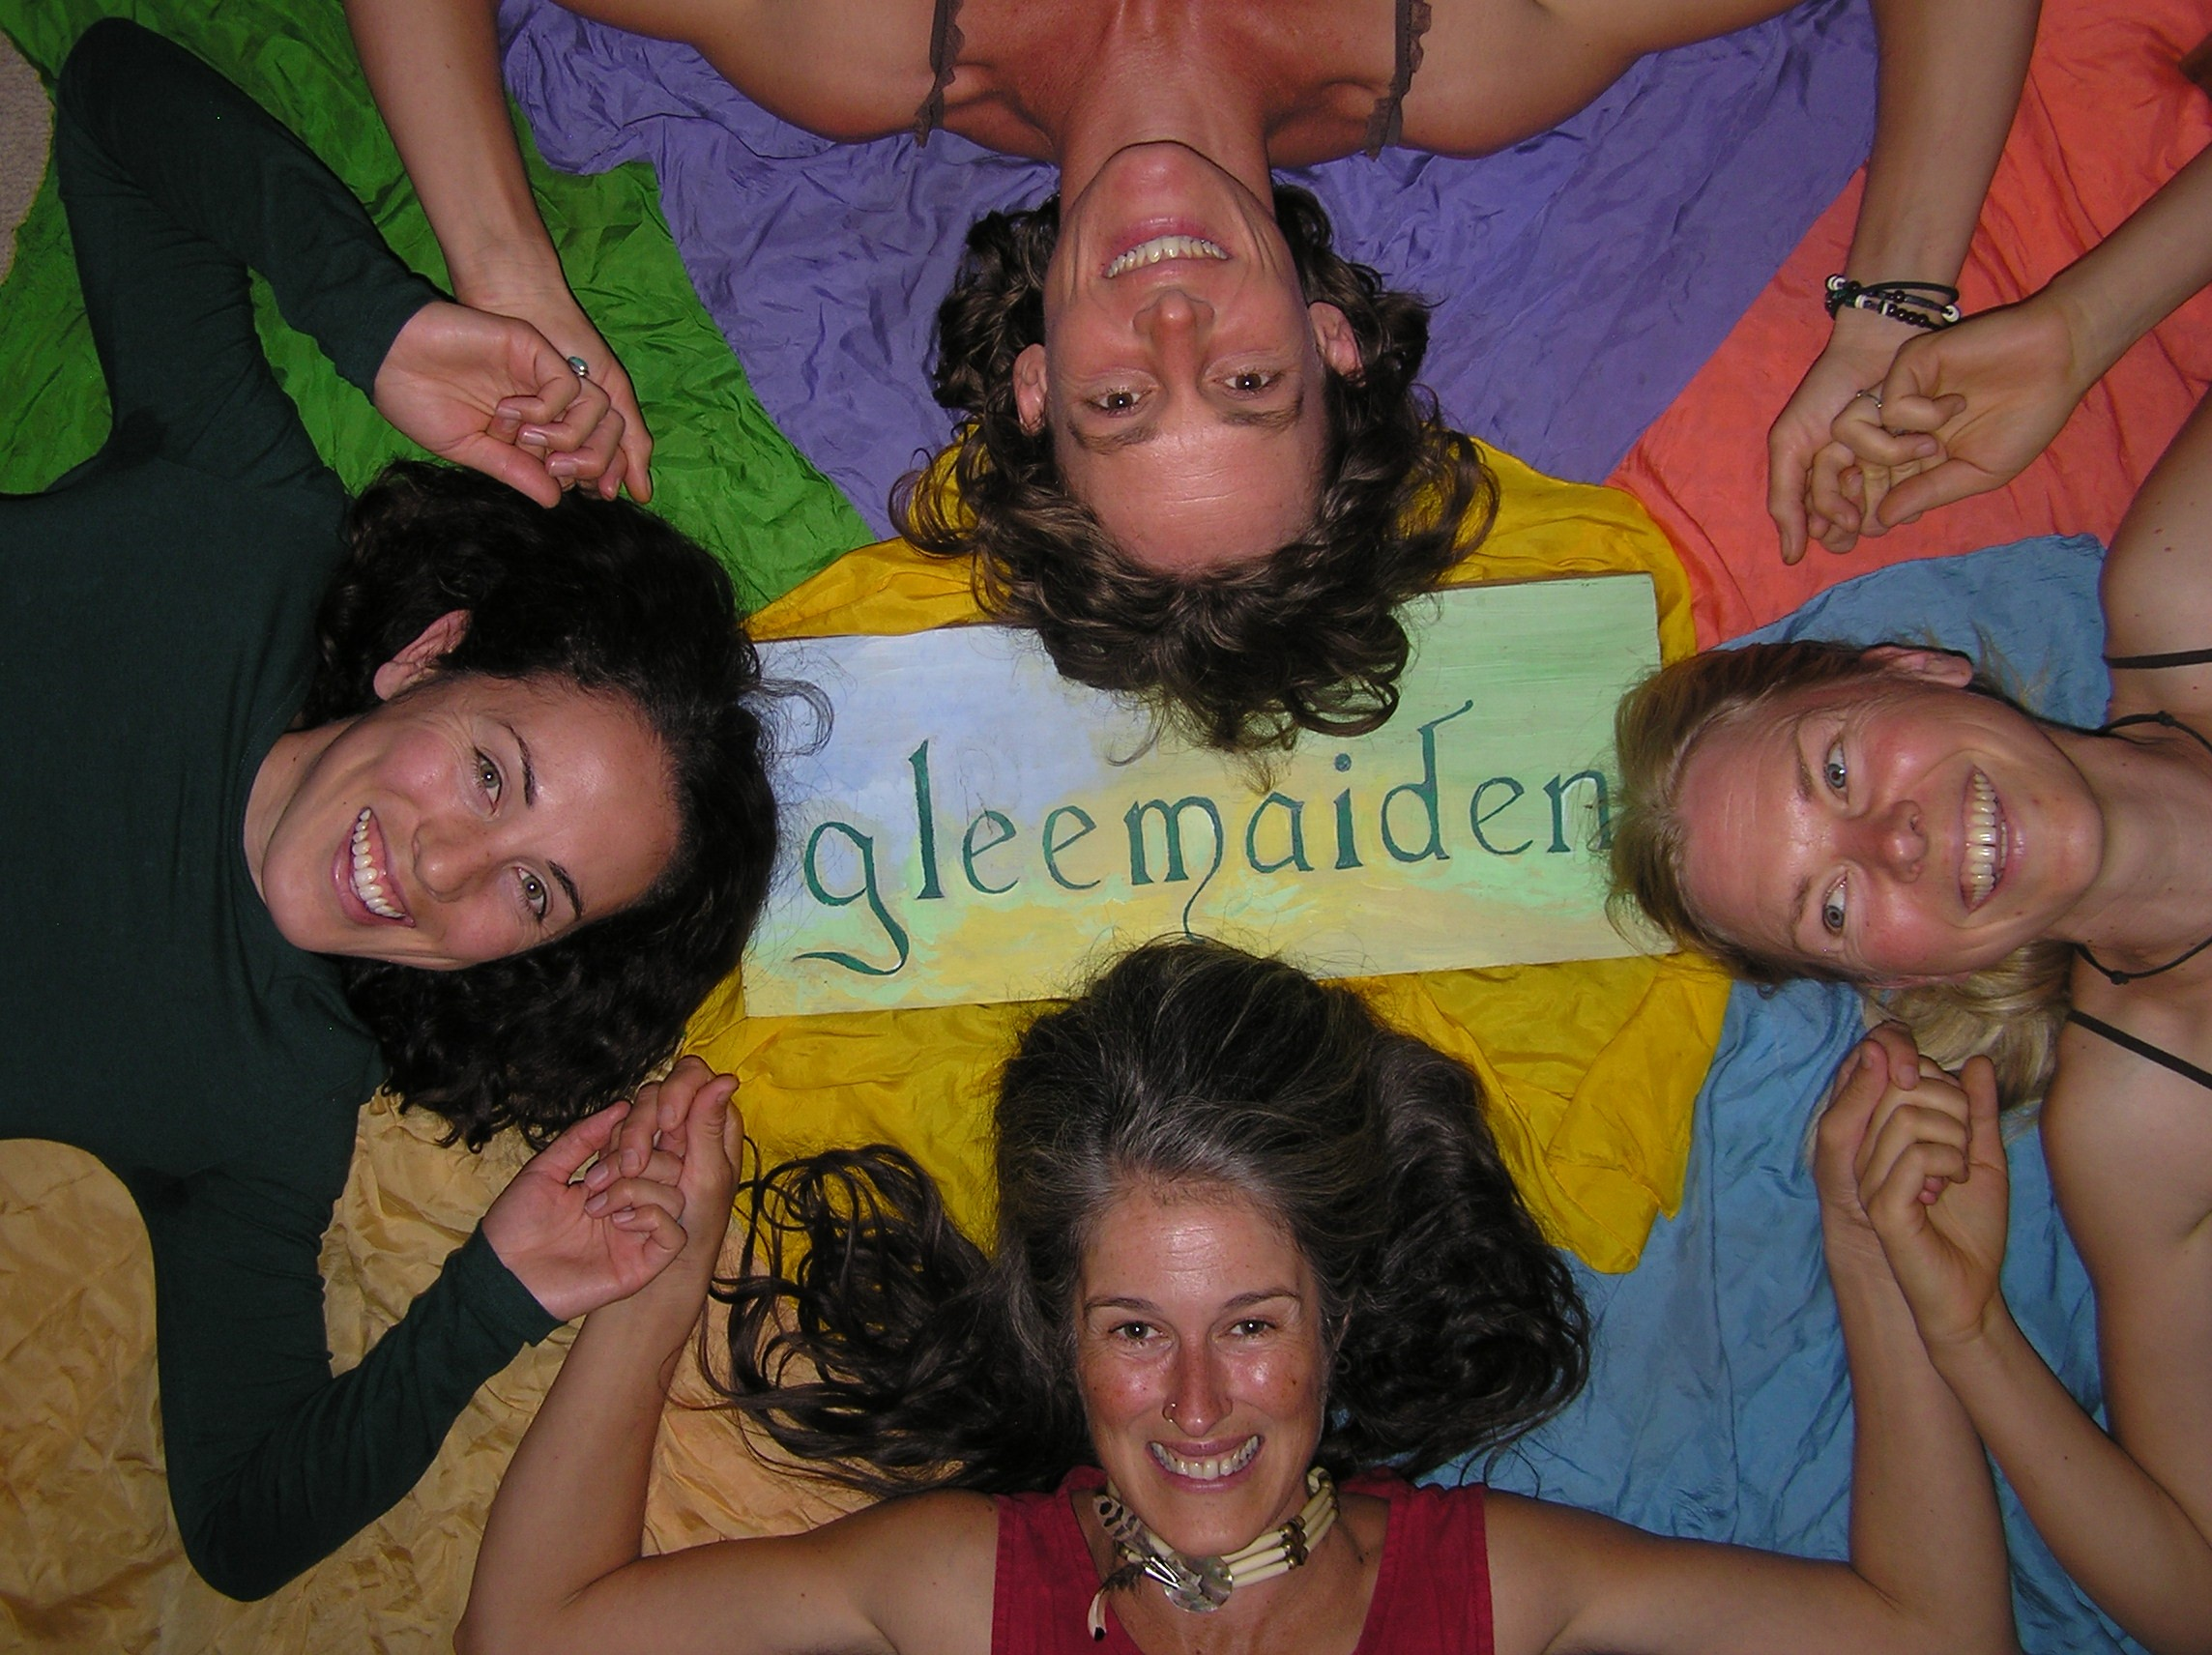 montoya brothers and gleemaiden tonight on silver city acoustic in the second hour we ll gleemaiden a local all women a cappella group which performs regularly at a variety of local venues